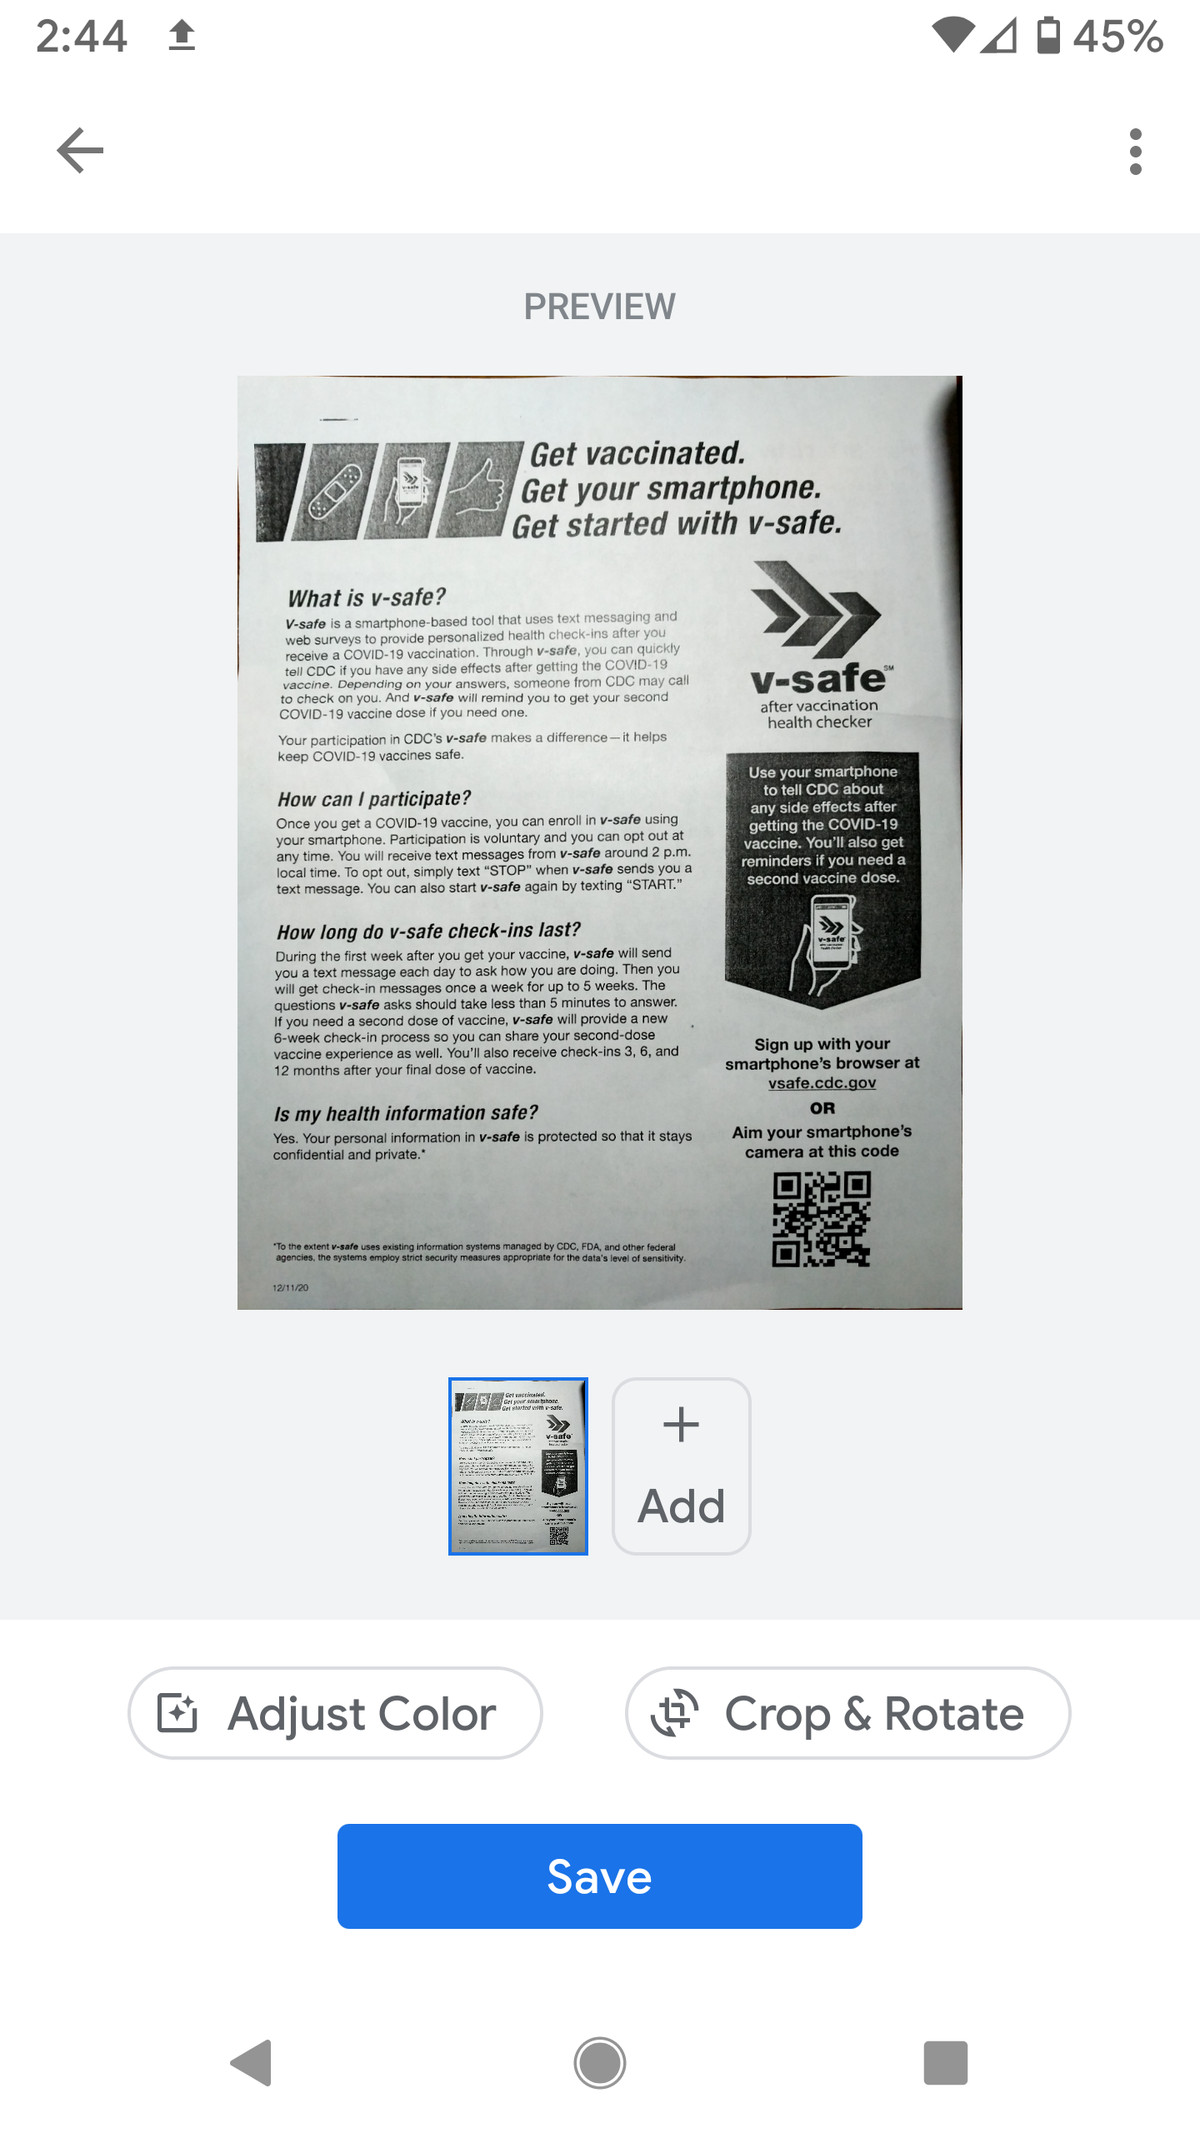 There are basic edit features for the PDF.